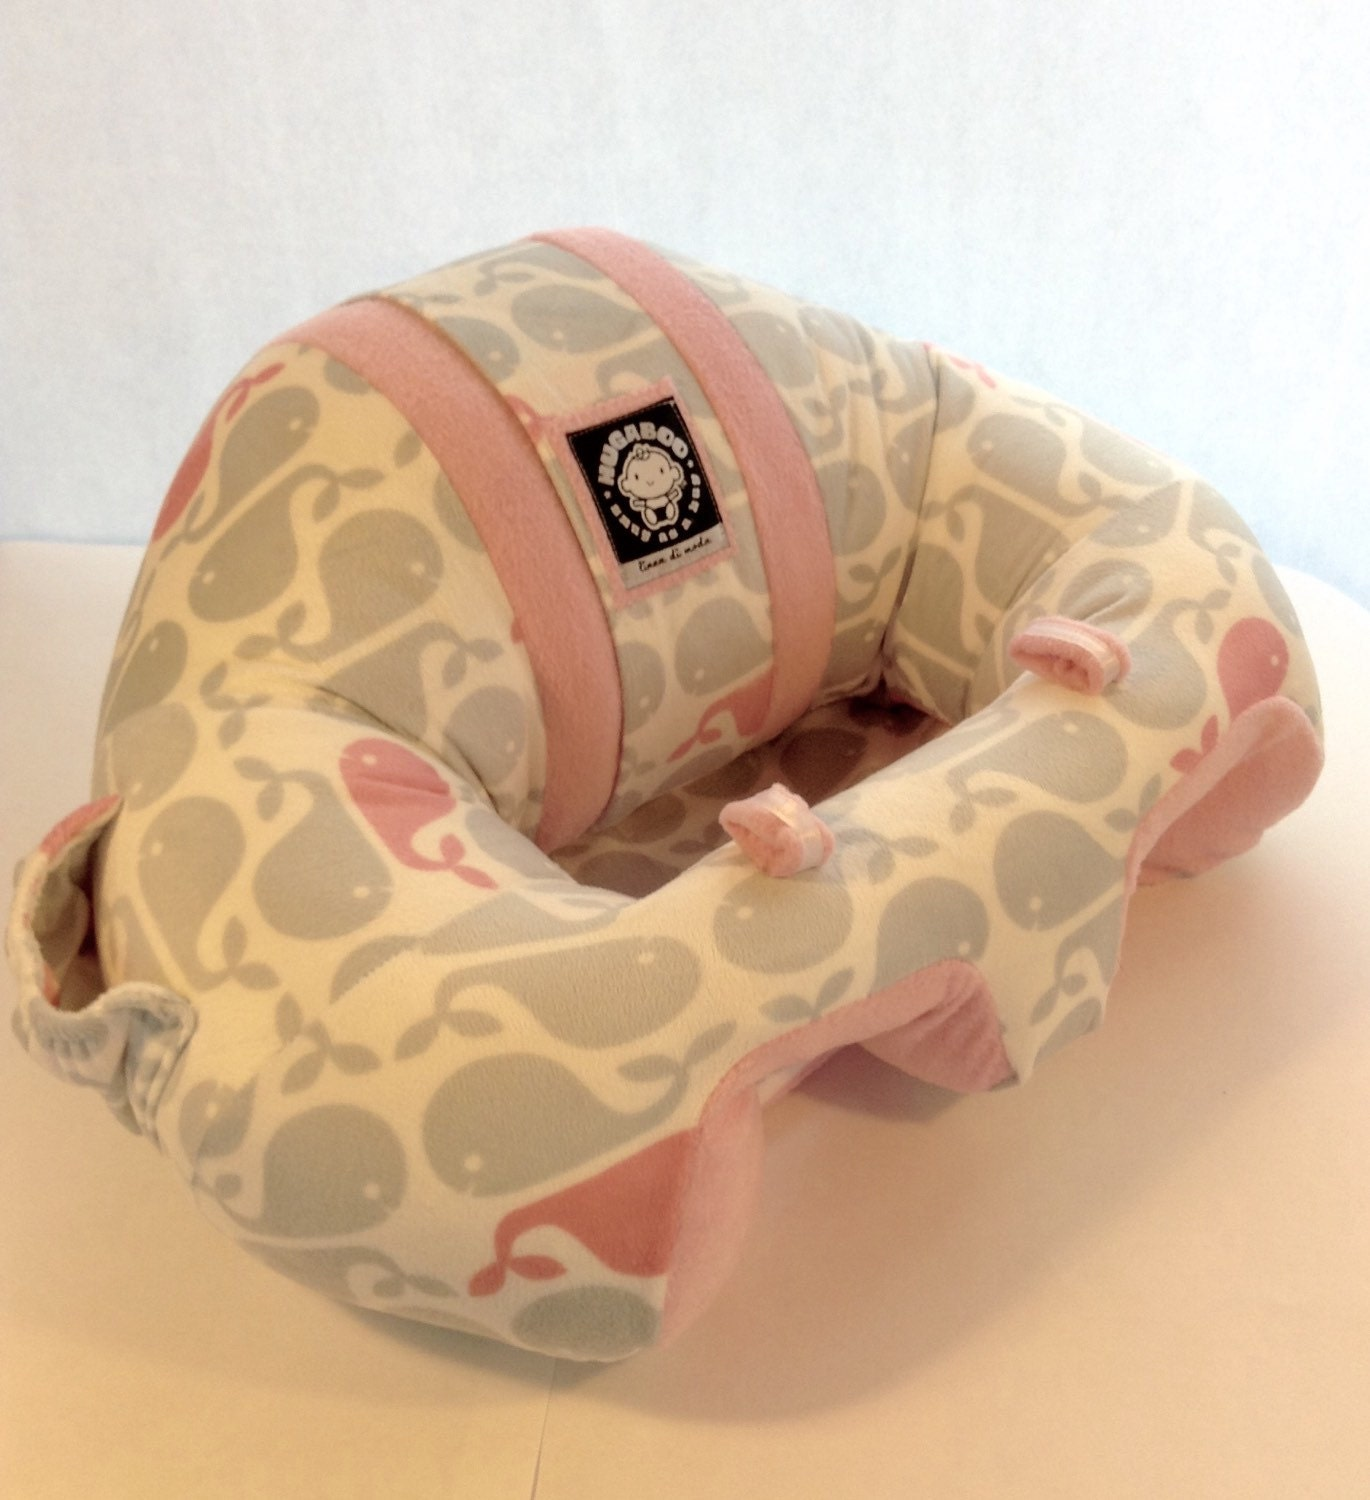 Hugaboo Infant Support Seat Handmade By The By